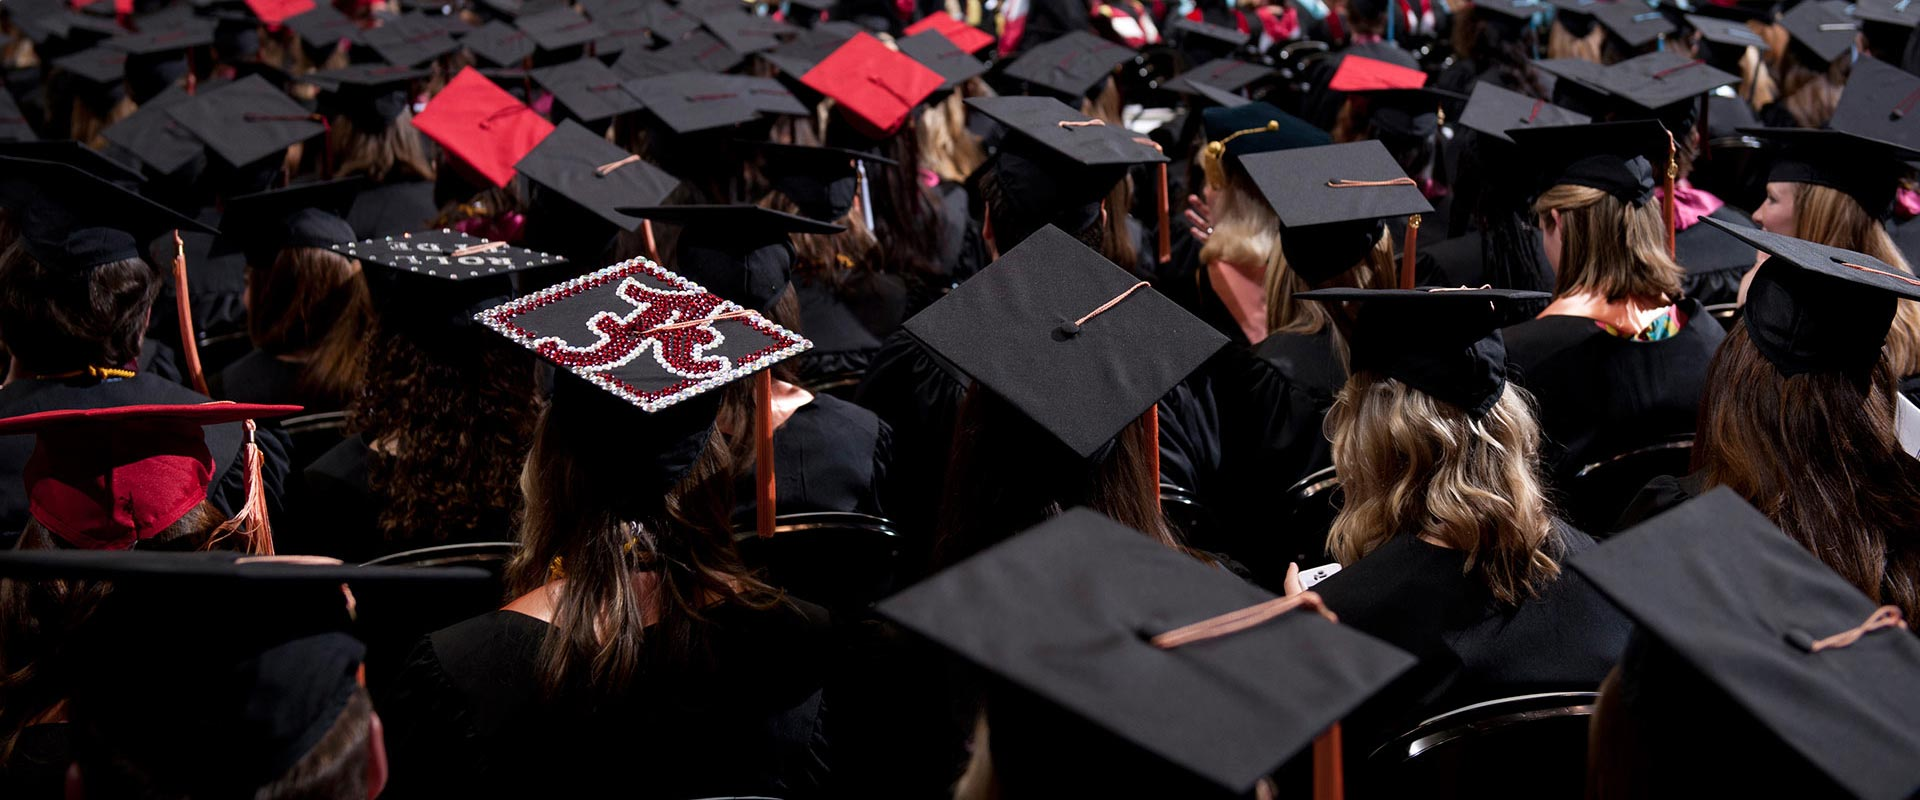 A University of Alabama commencement ceremony